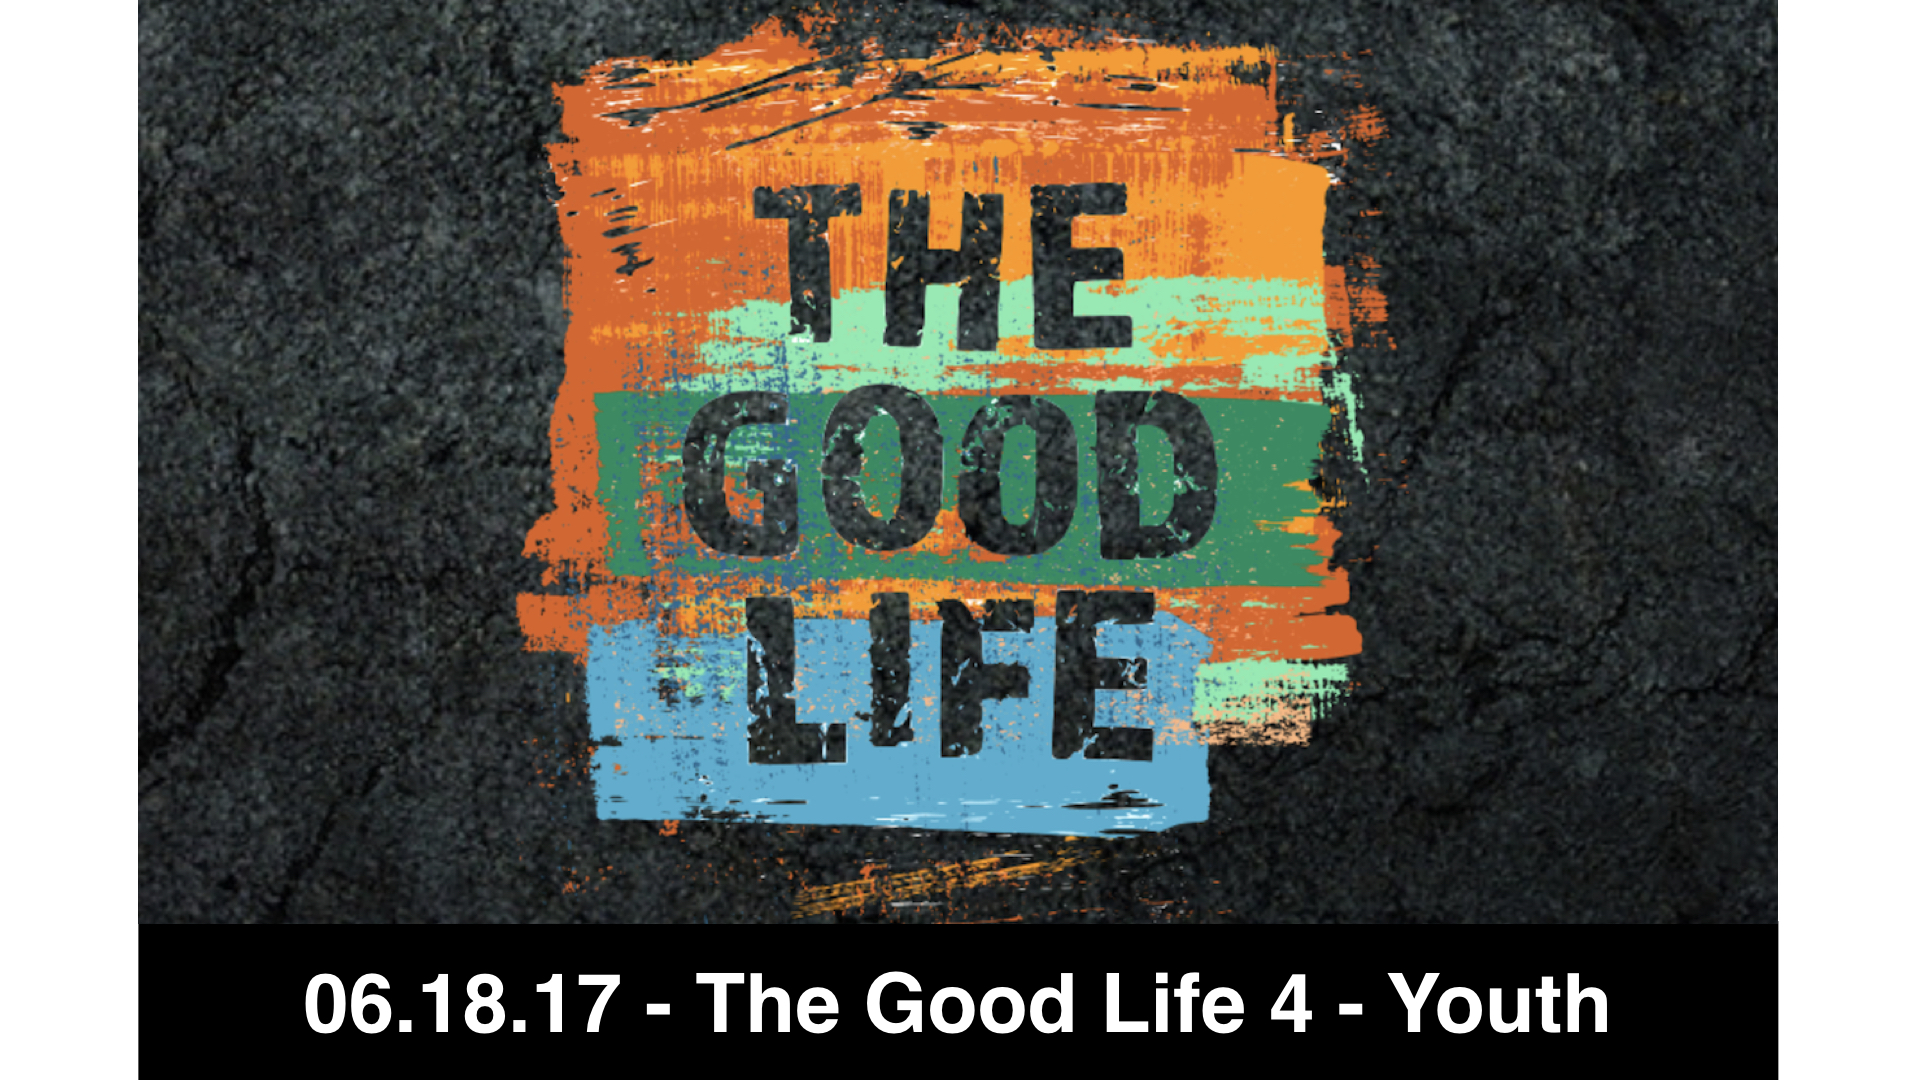 06.18.17 The Good Life 4 - Youth